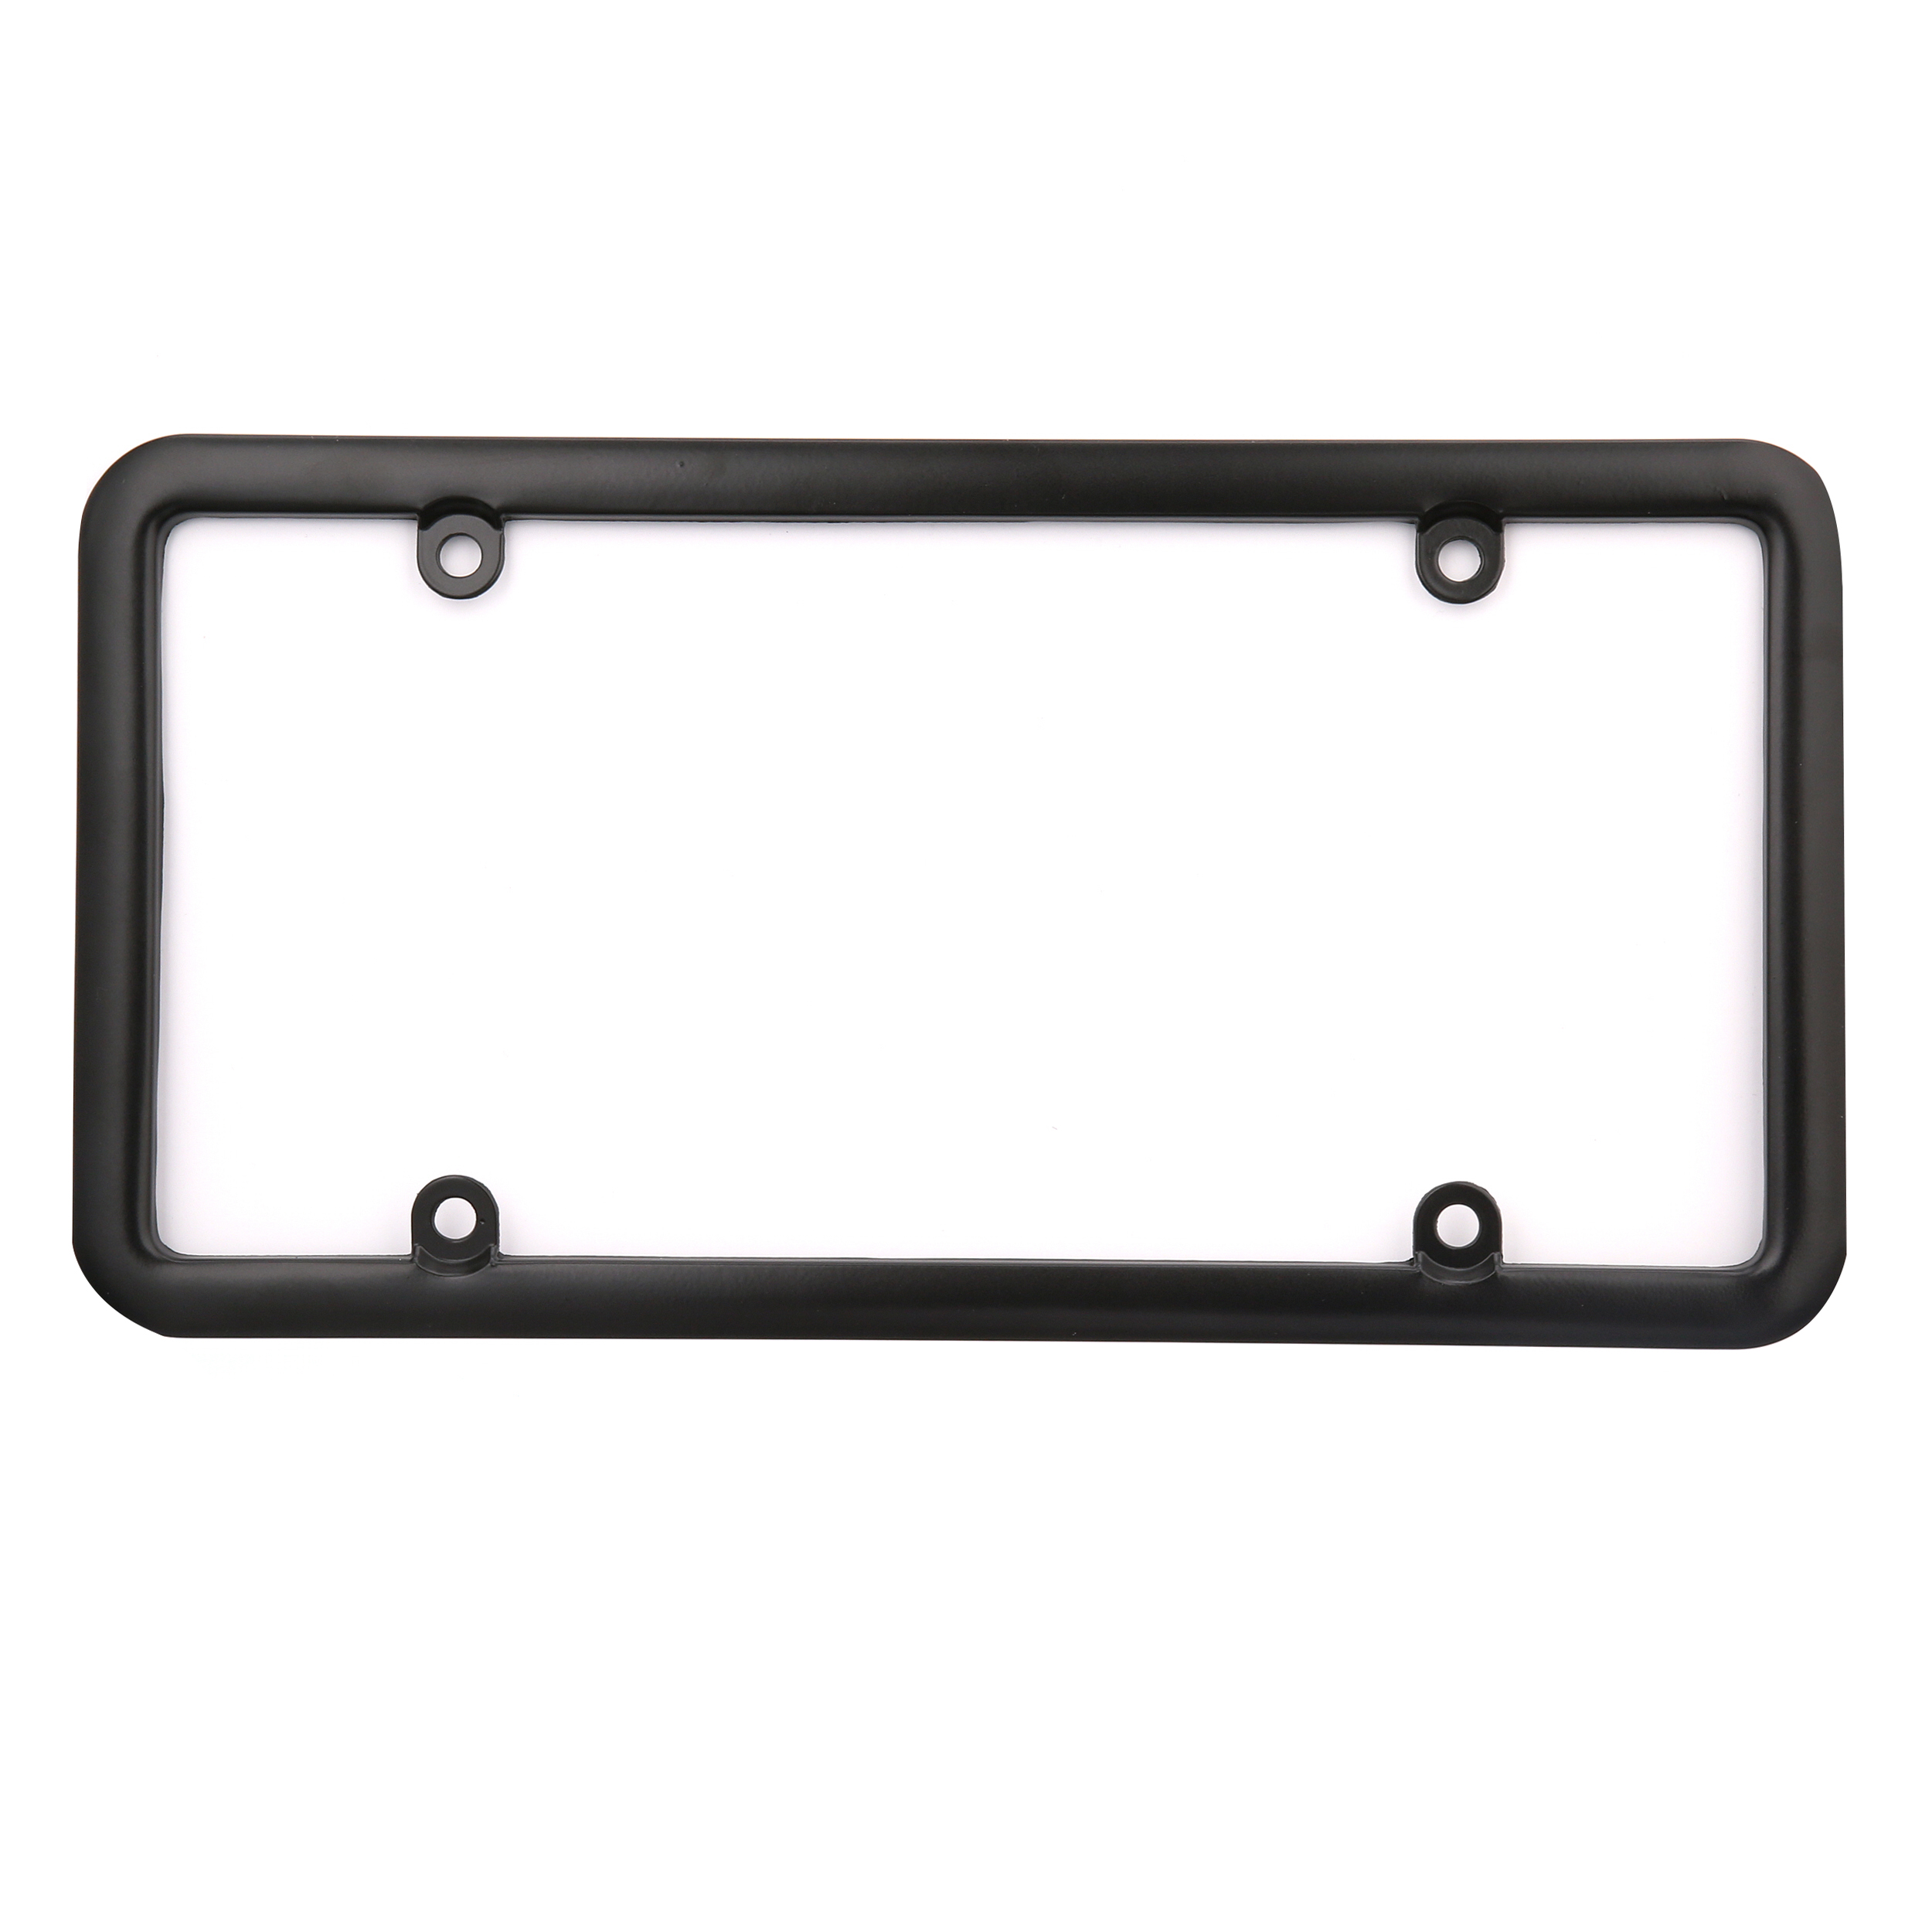 Black Plastic License Plate Tag Frame Clear Shield+Bolts+Caps for Car-Truck